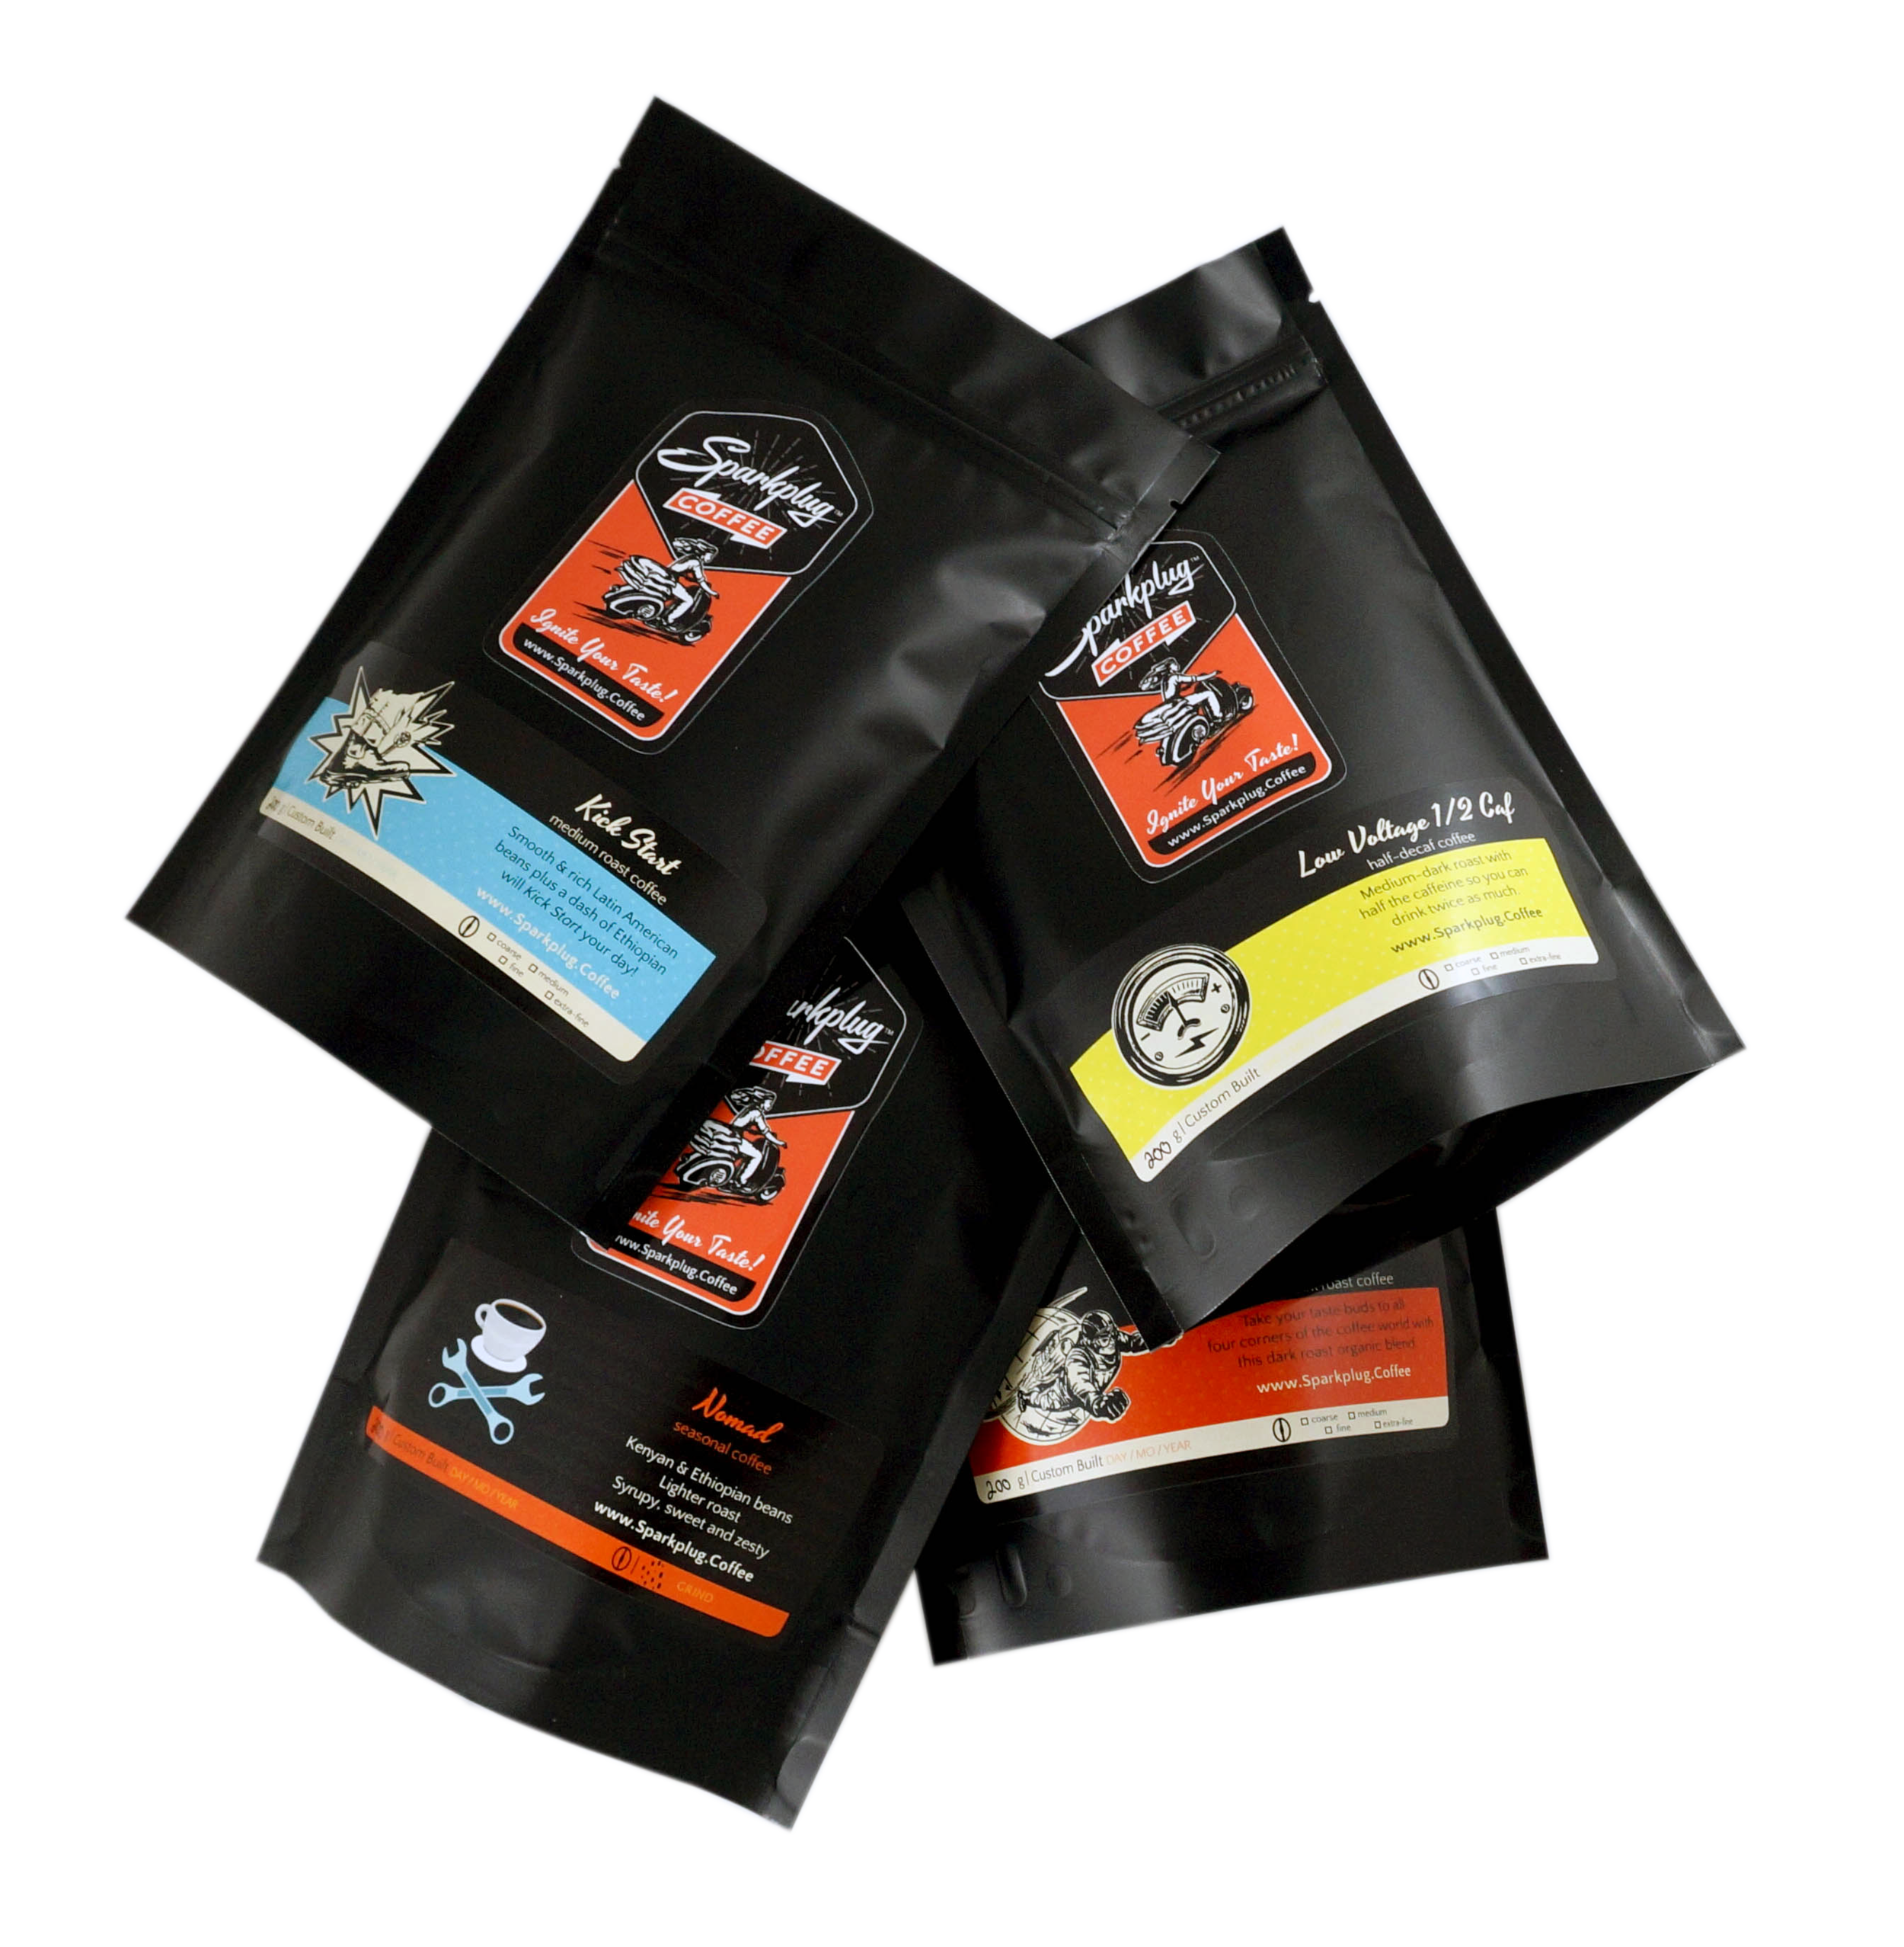 Win mini samplers of 8 delicious coffees!